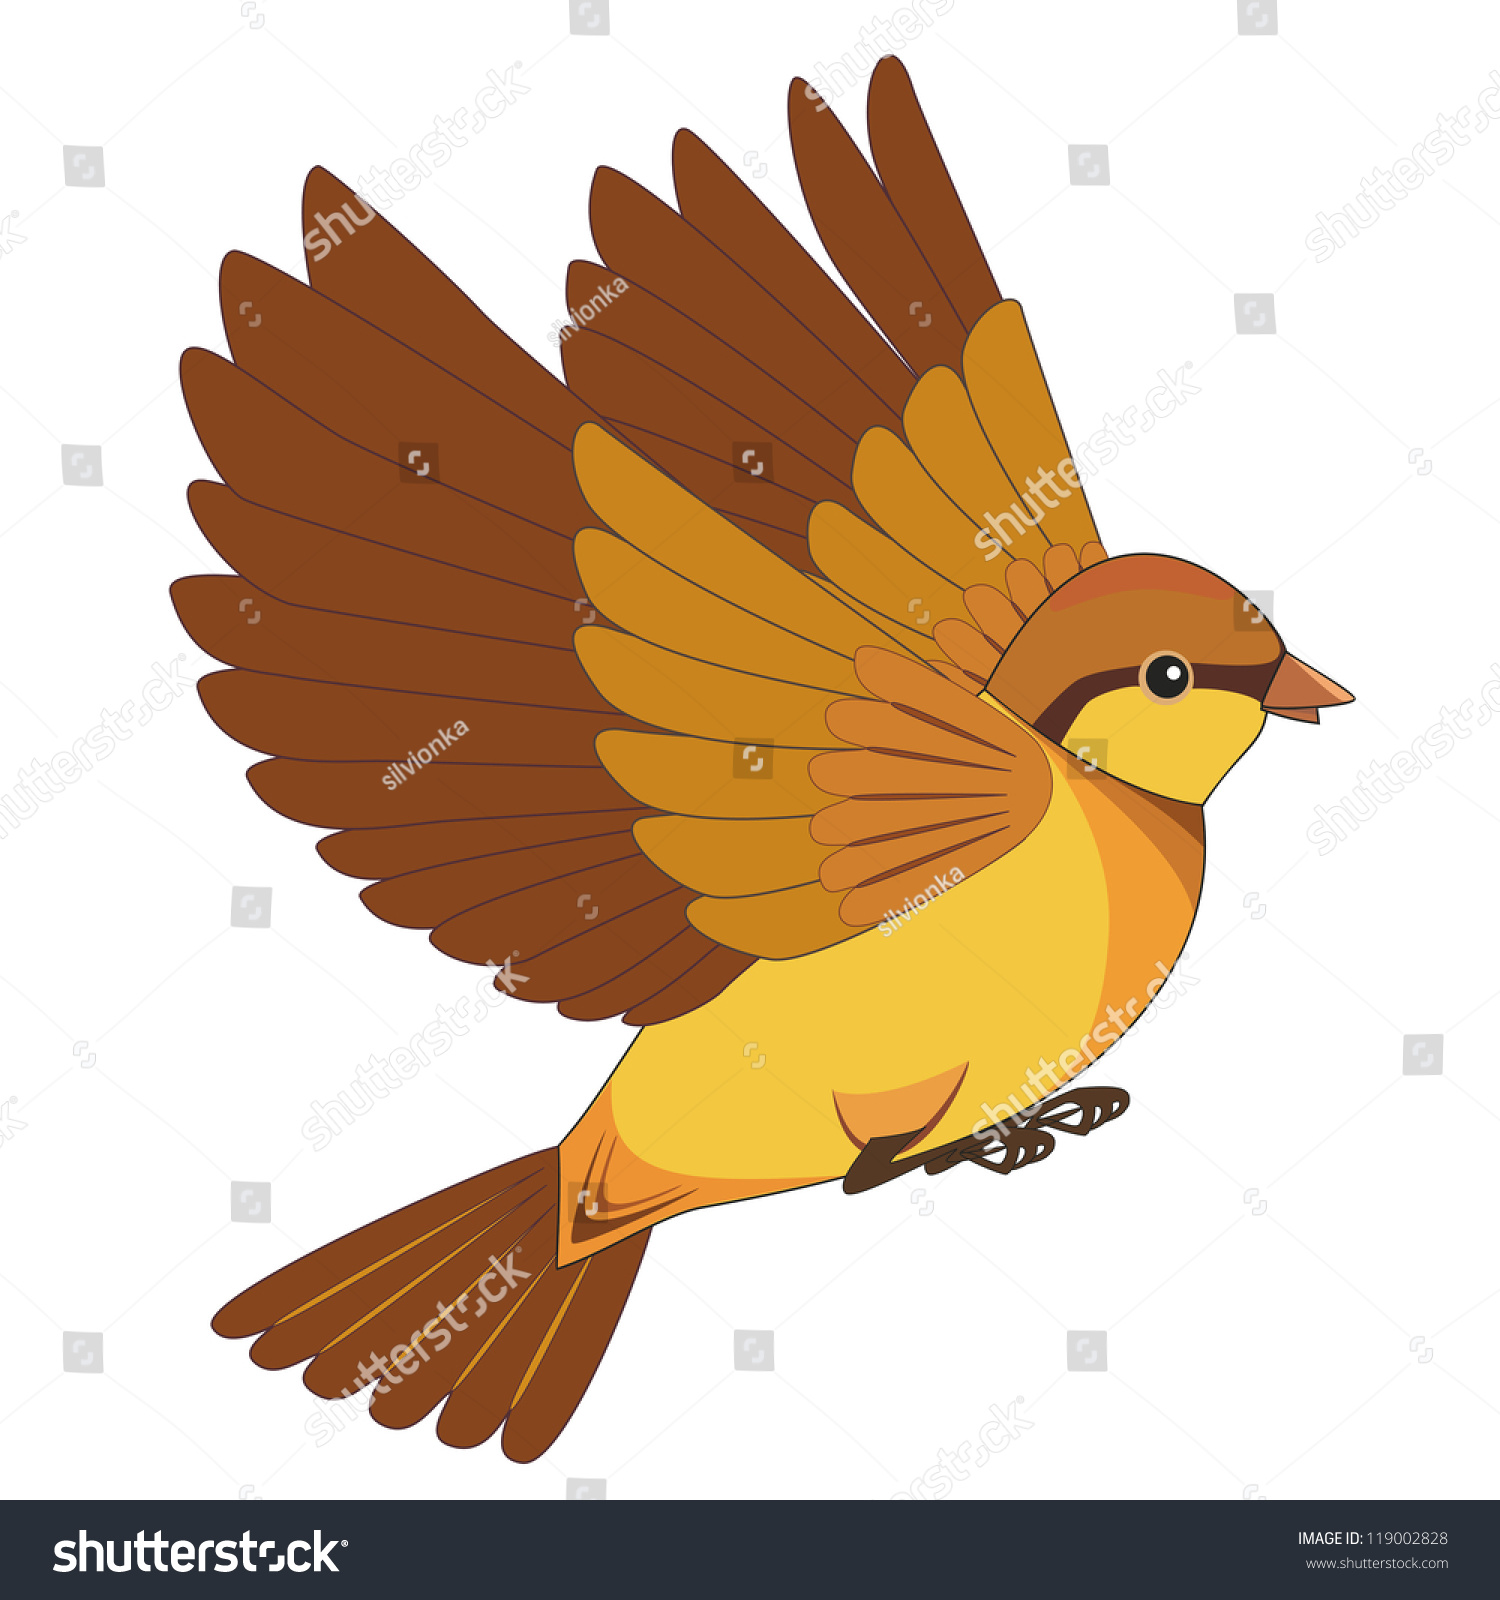 Stock Vector Flying Bird Cartoon Isolated On White Background Vector I...